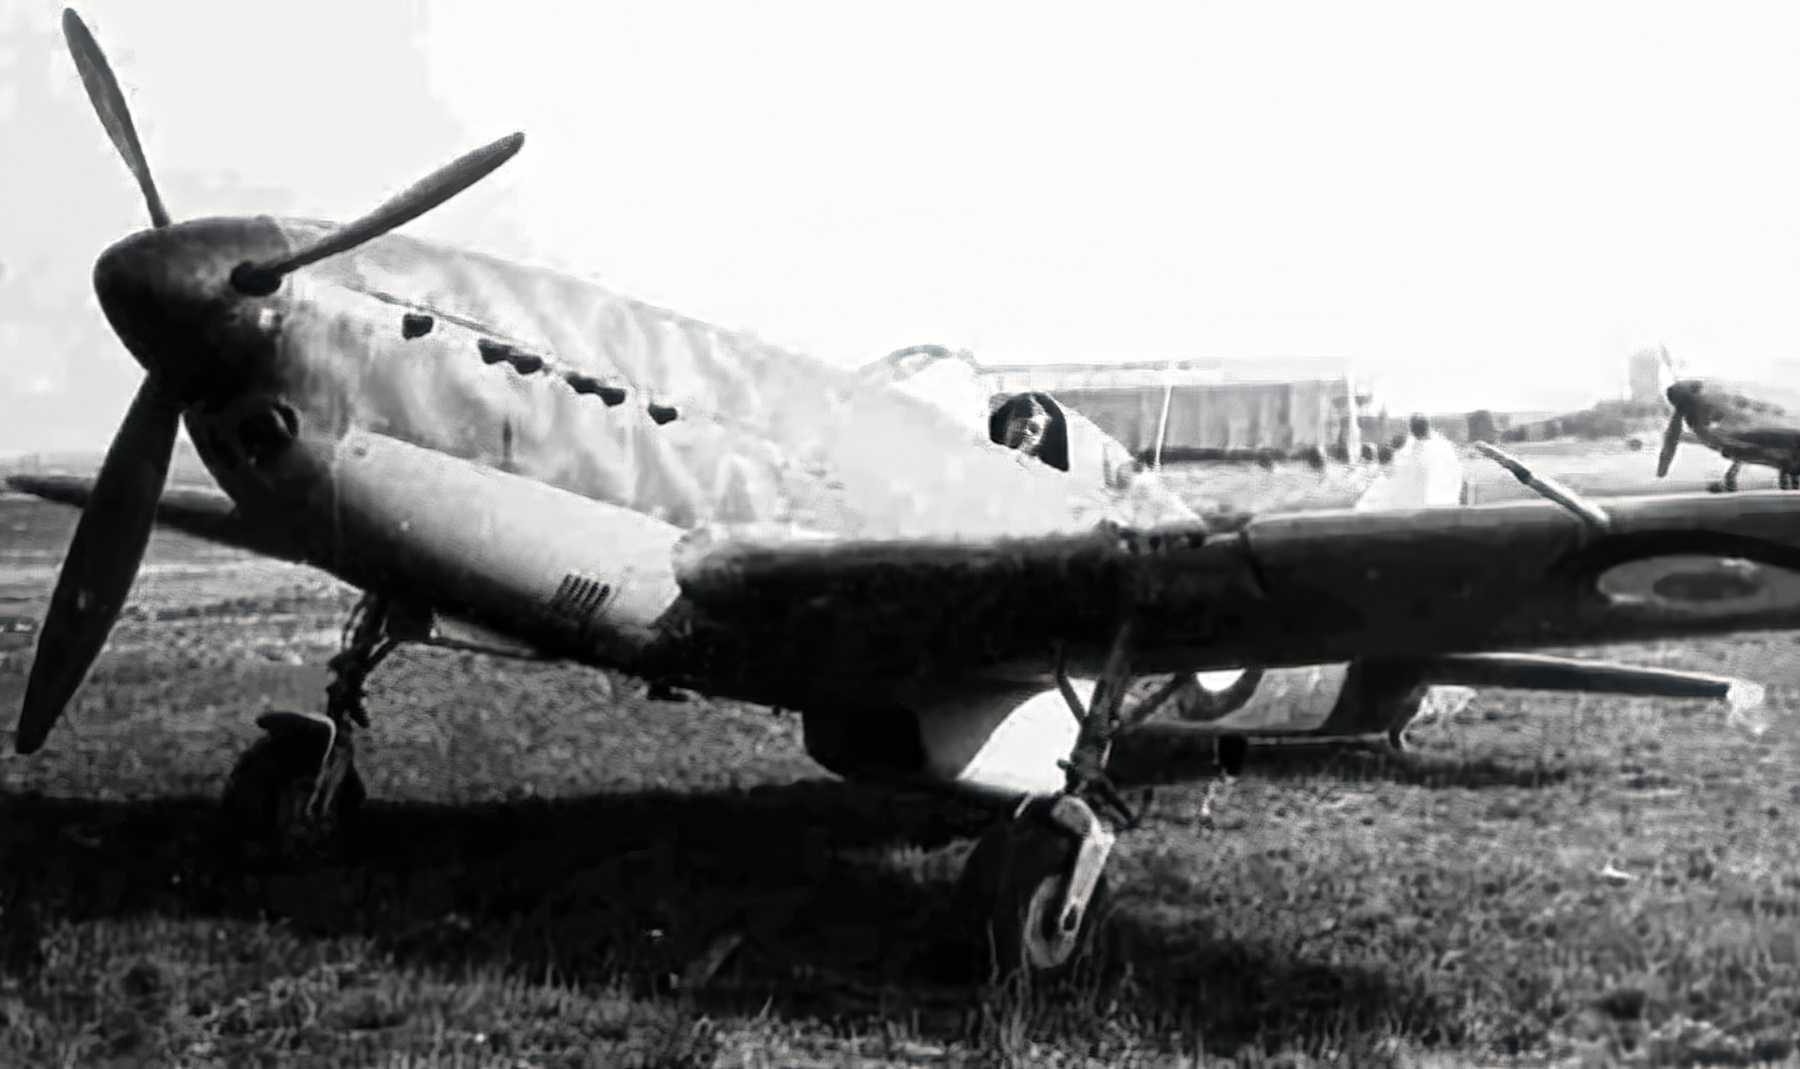 French Airforce Arsenal VG 33 sits abandoned after the fall of France June 1940 ebay 05